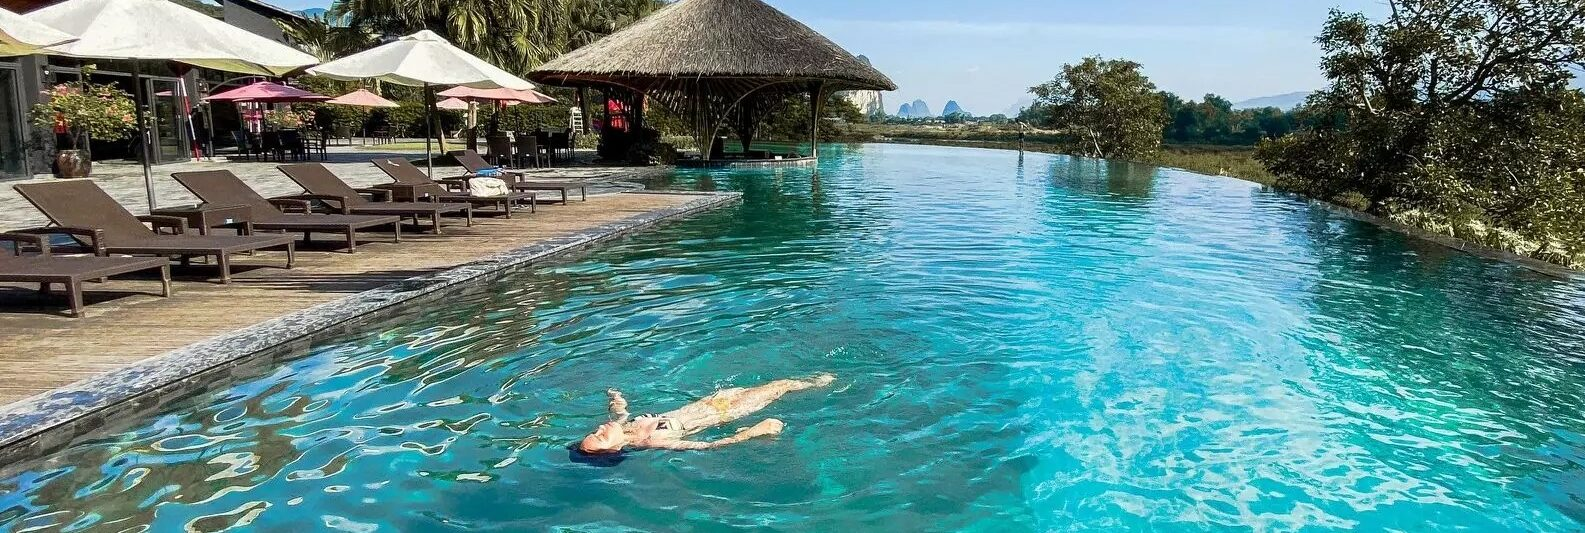 Image of a person swimming in the pool at the Serena Resort in Kim Boi, Hoa Binh Province, Vietnam